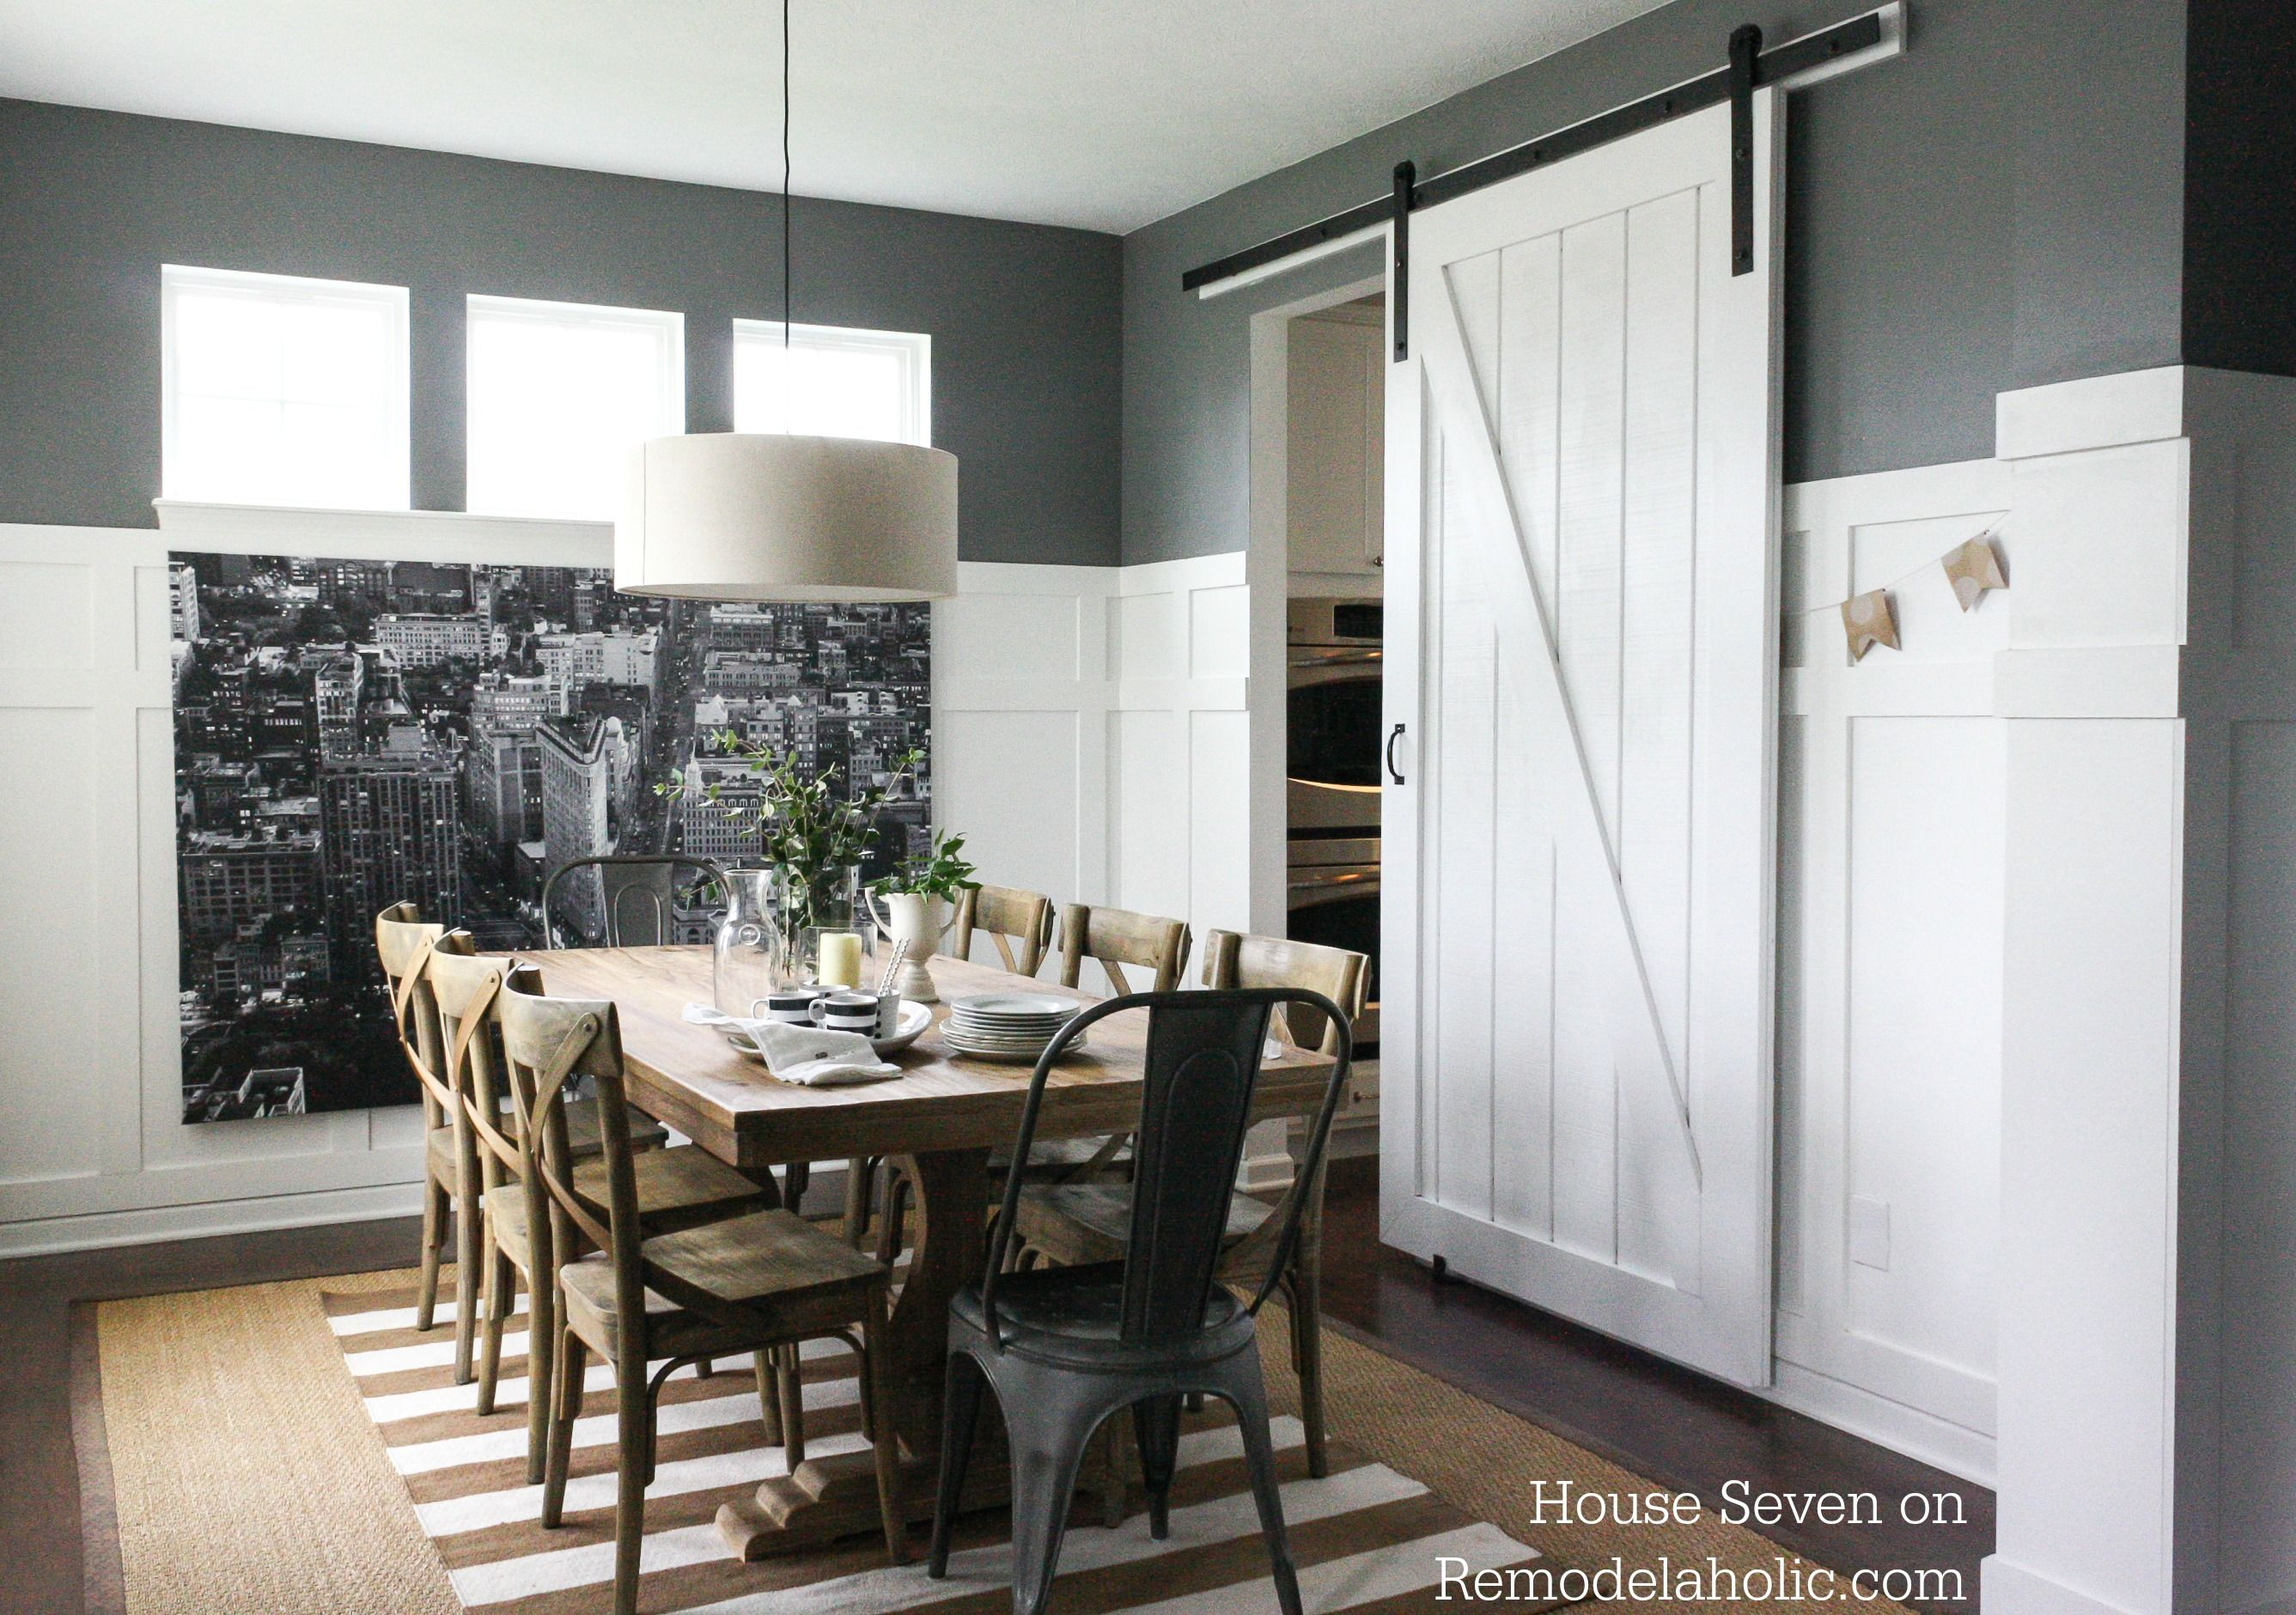 Adding style to your home with interior barn door dining room decor